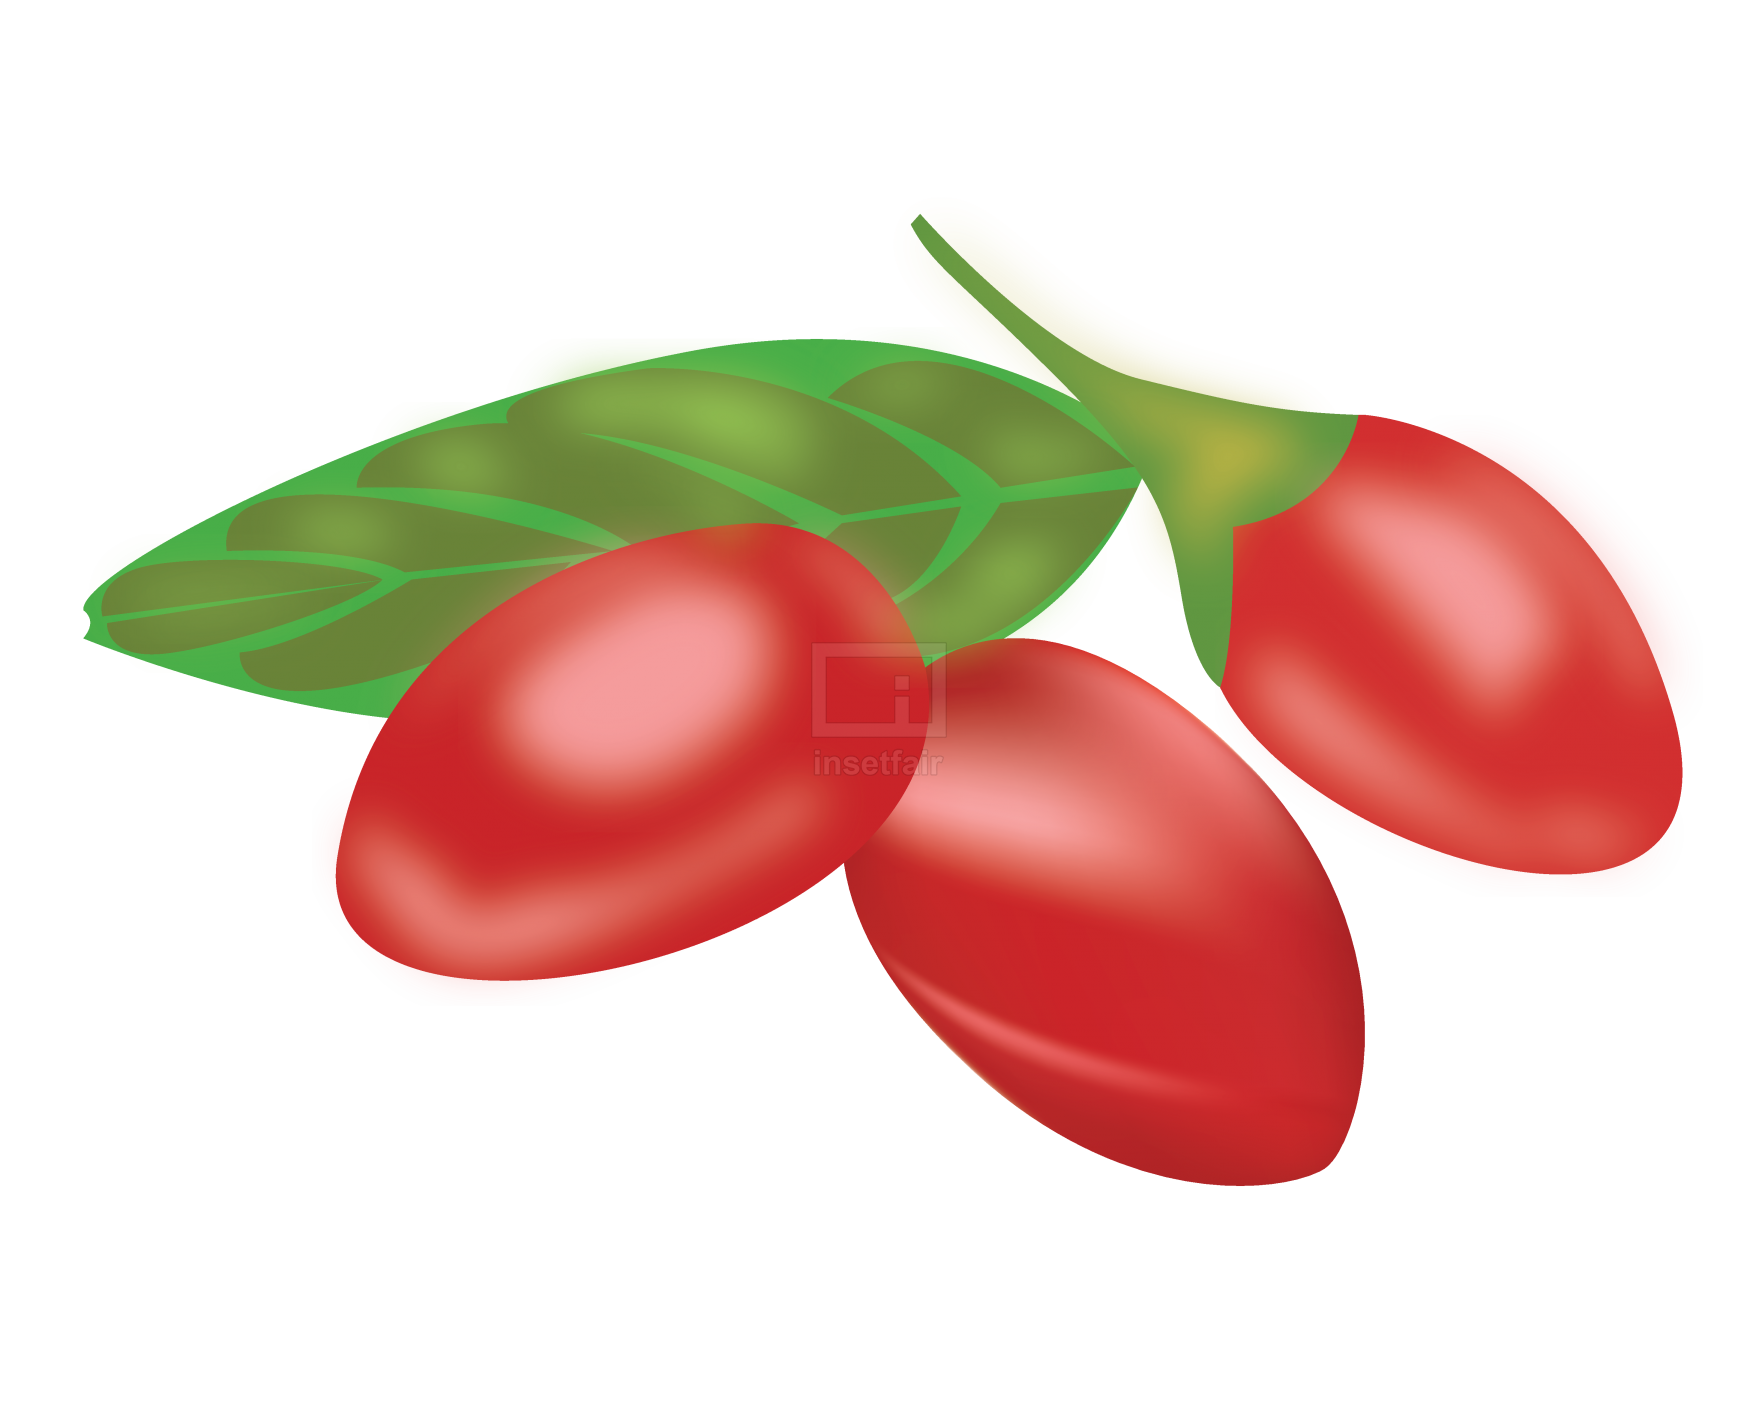 Goji berry fruits free download vector illustration PNG file